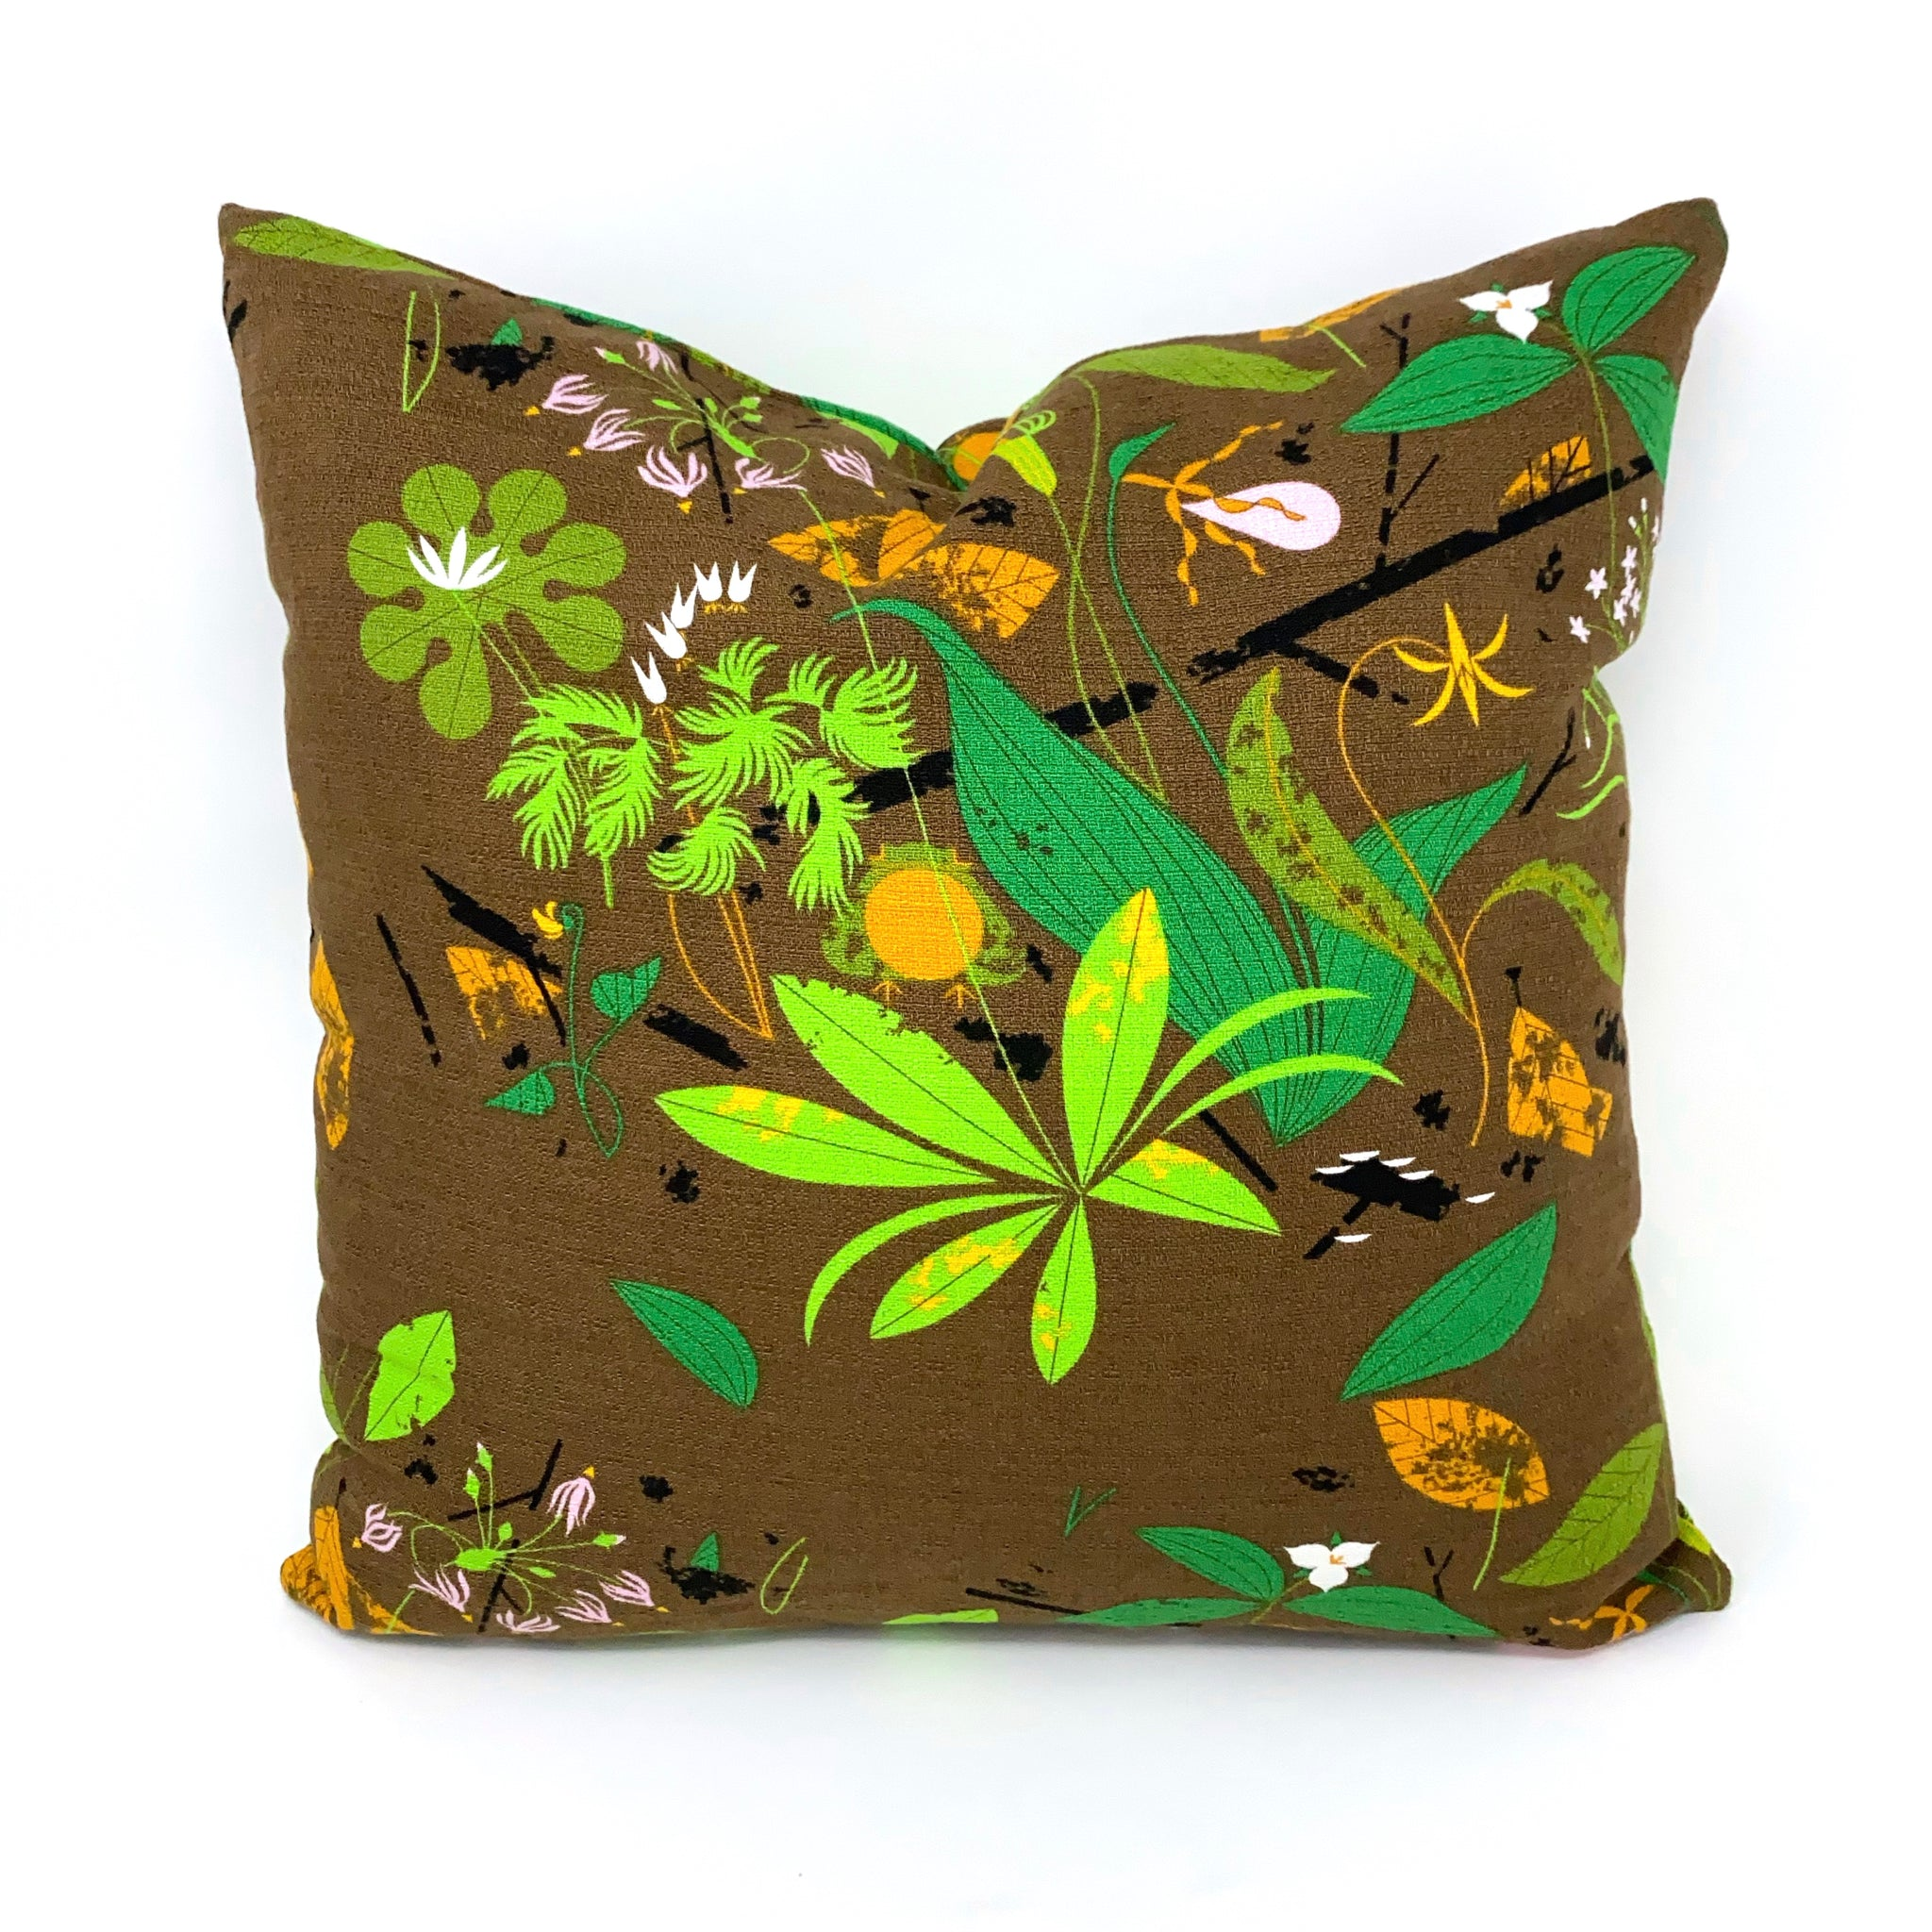 Throw Pillow Cover Charley Harper Barkcloth Spring Wildflowers